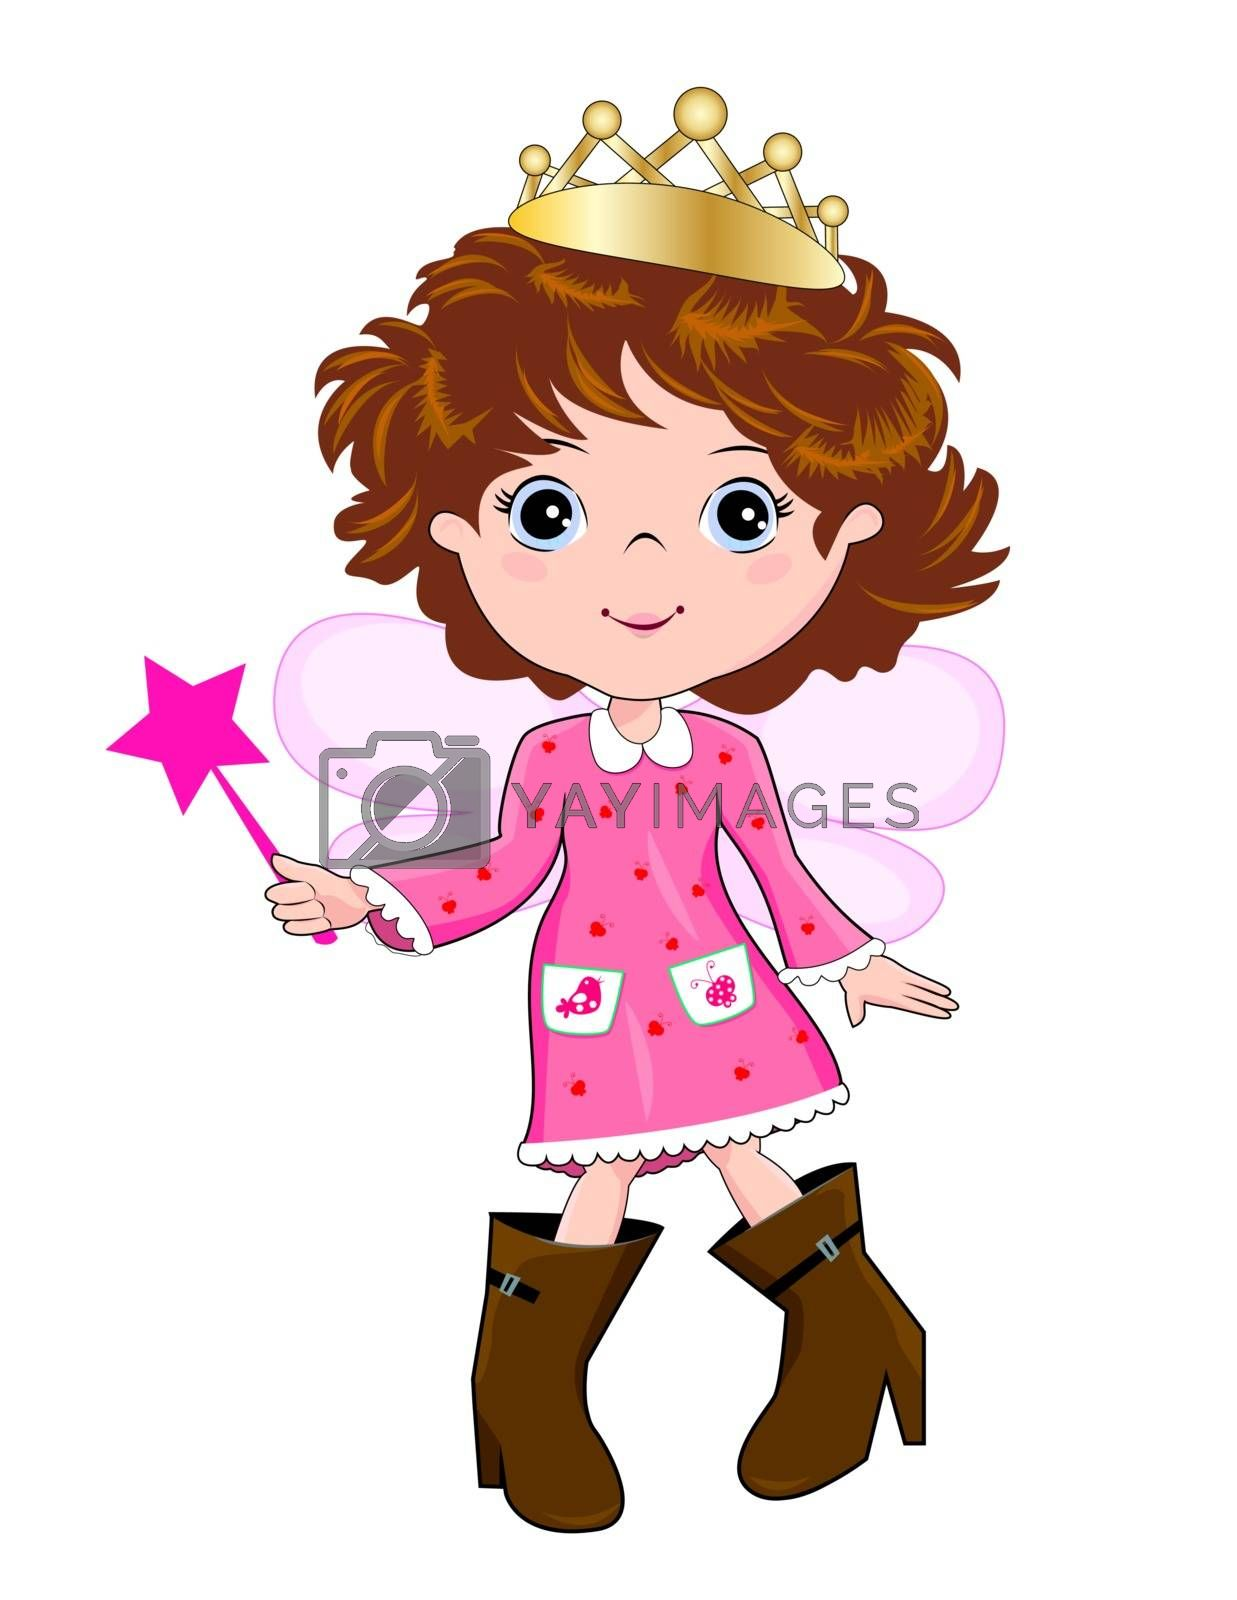 Little girl in a pink dress and high women's boots, walking awkwardly.